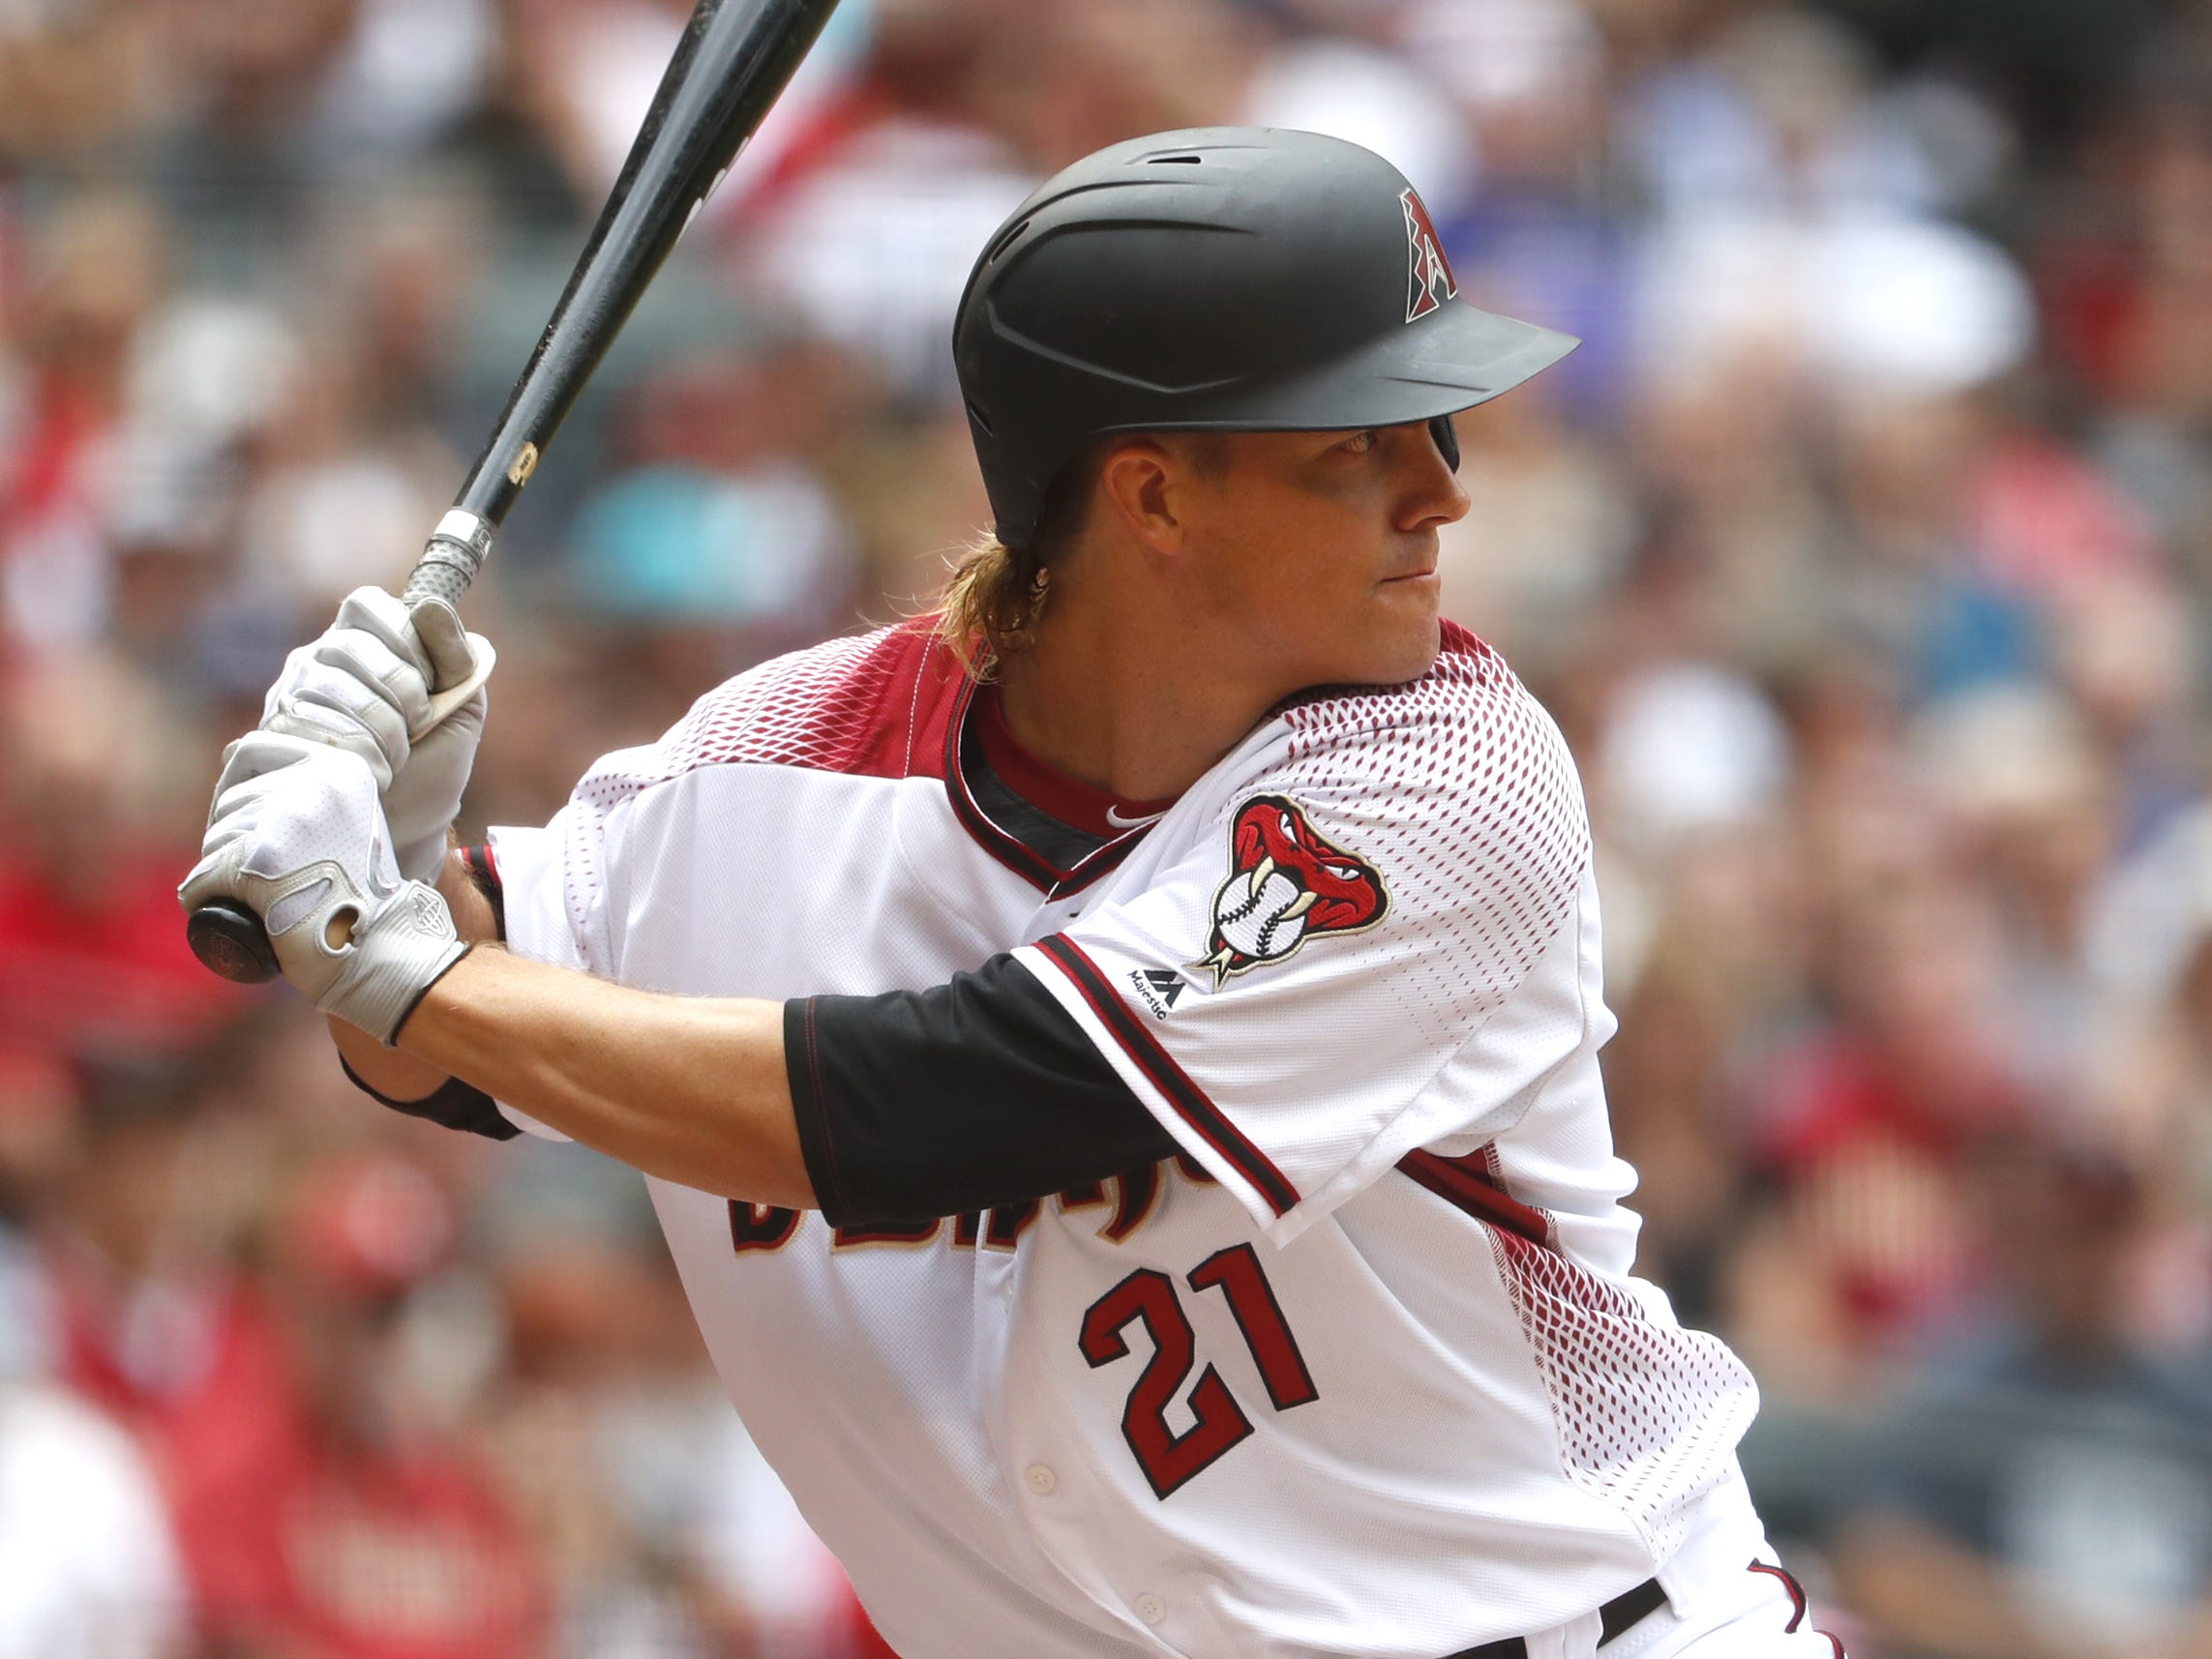 Diamondbacks' Zack Greinke (21) takes to the batters box against the Braves at Chase Field in Phoenix, Ariz. on May 12, 2019.